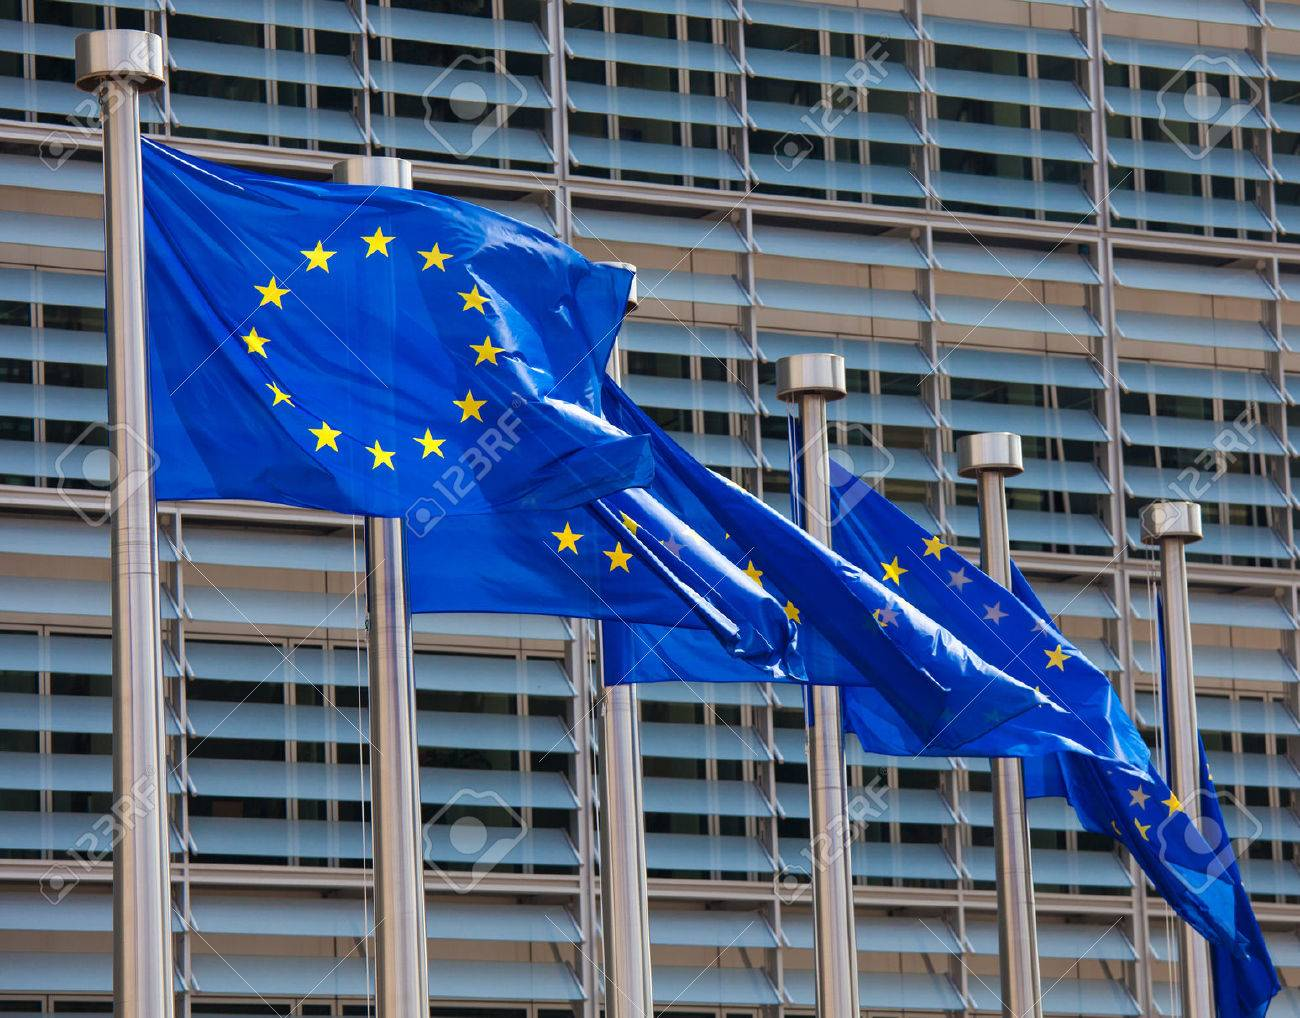 European flags in front of the Berlaymont building, headquarters of the European commission in Brussels. - 37205611